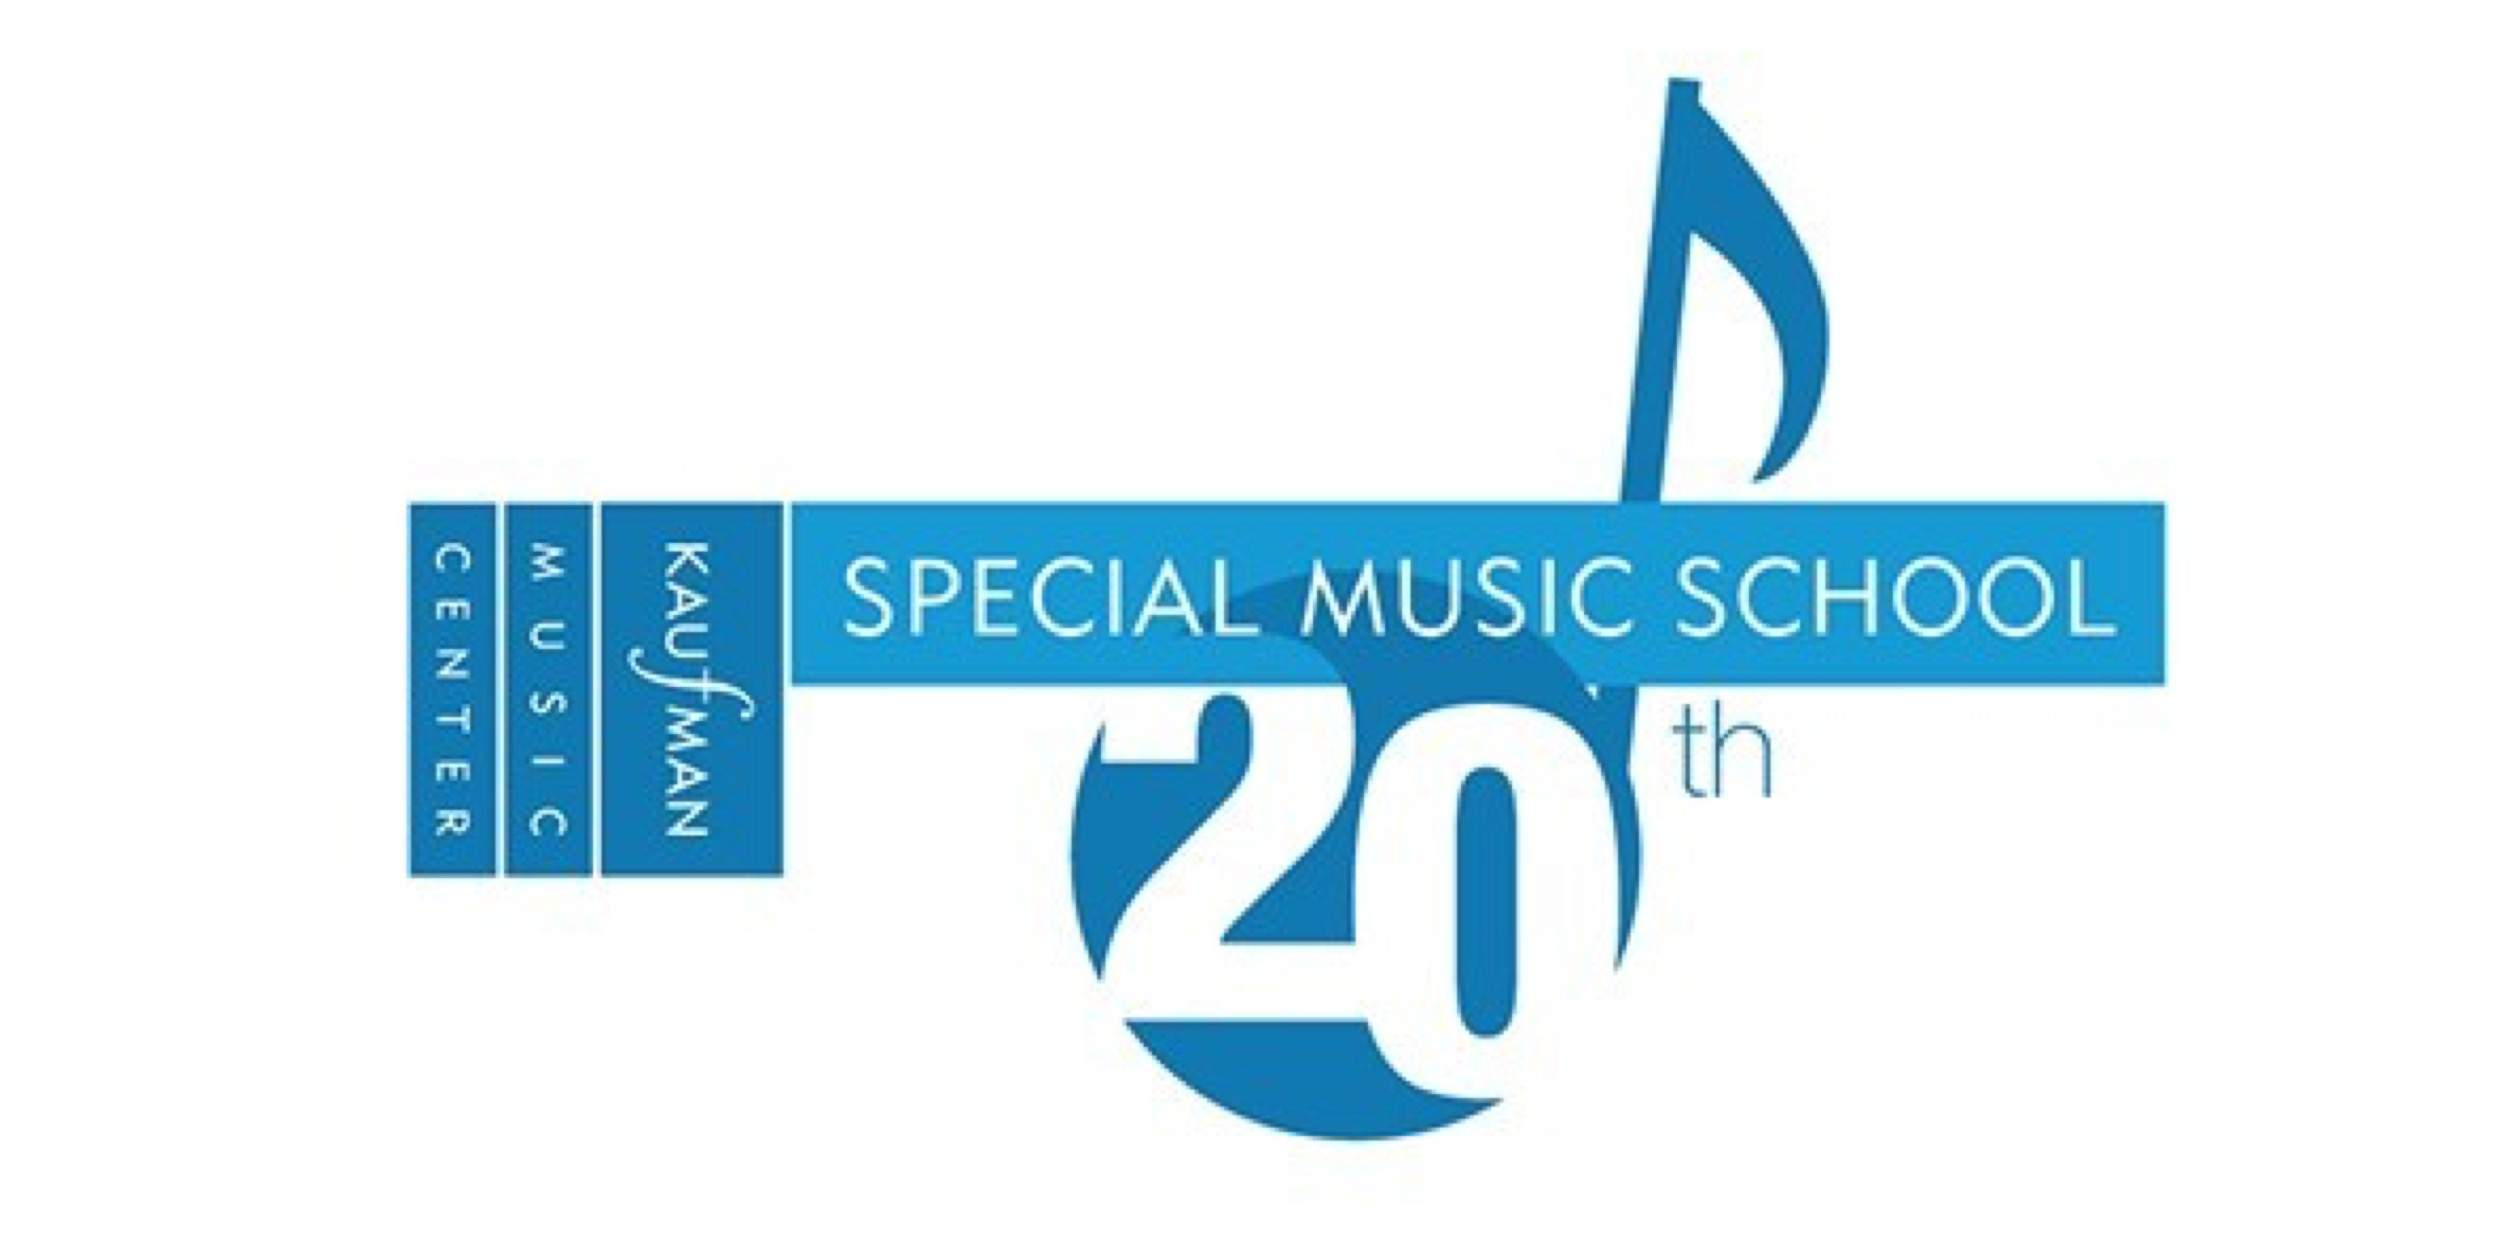 Happy 20th Anniversary, Special Music School!